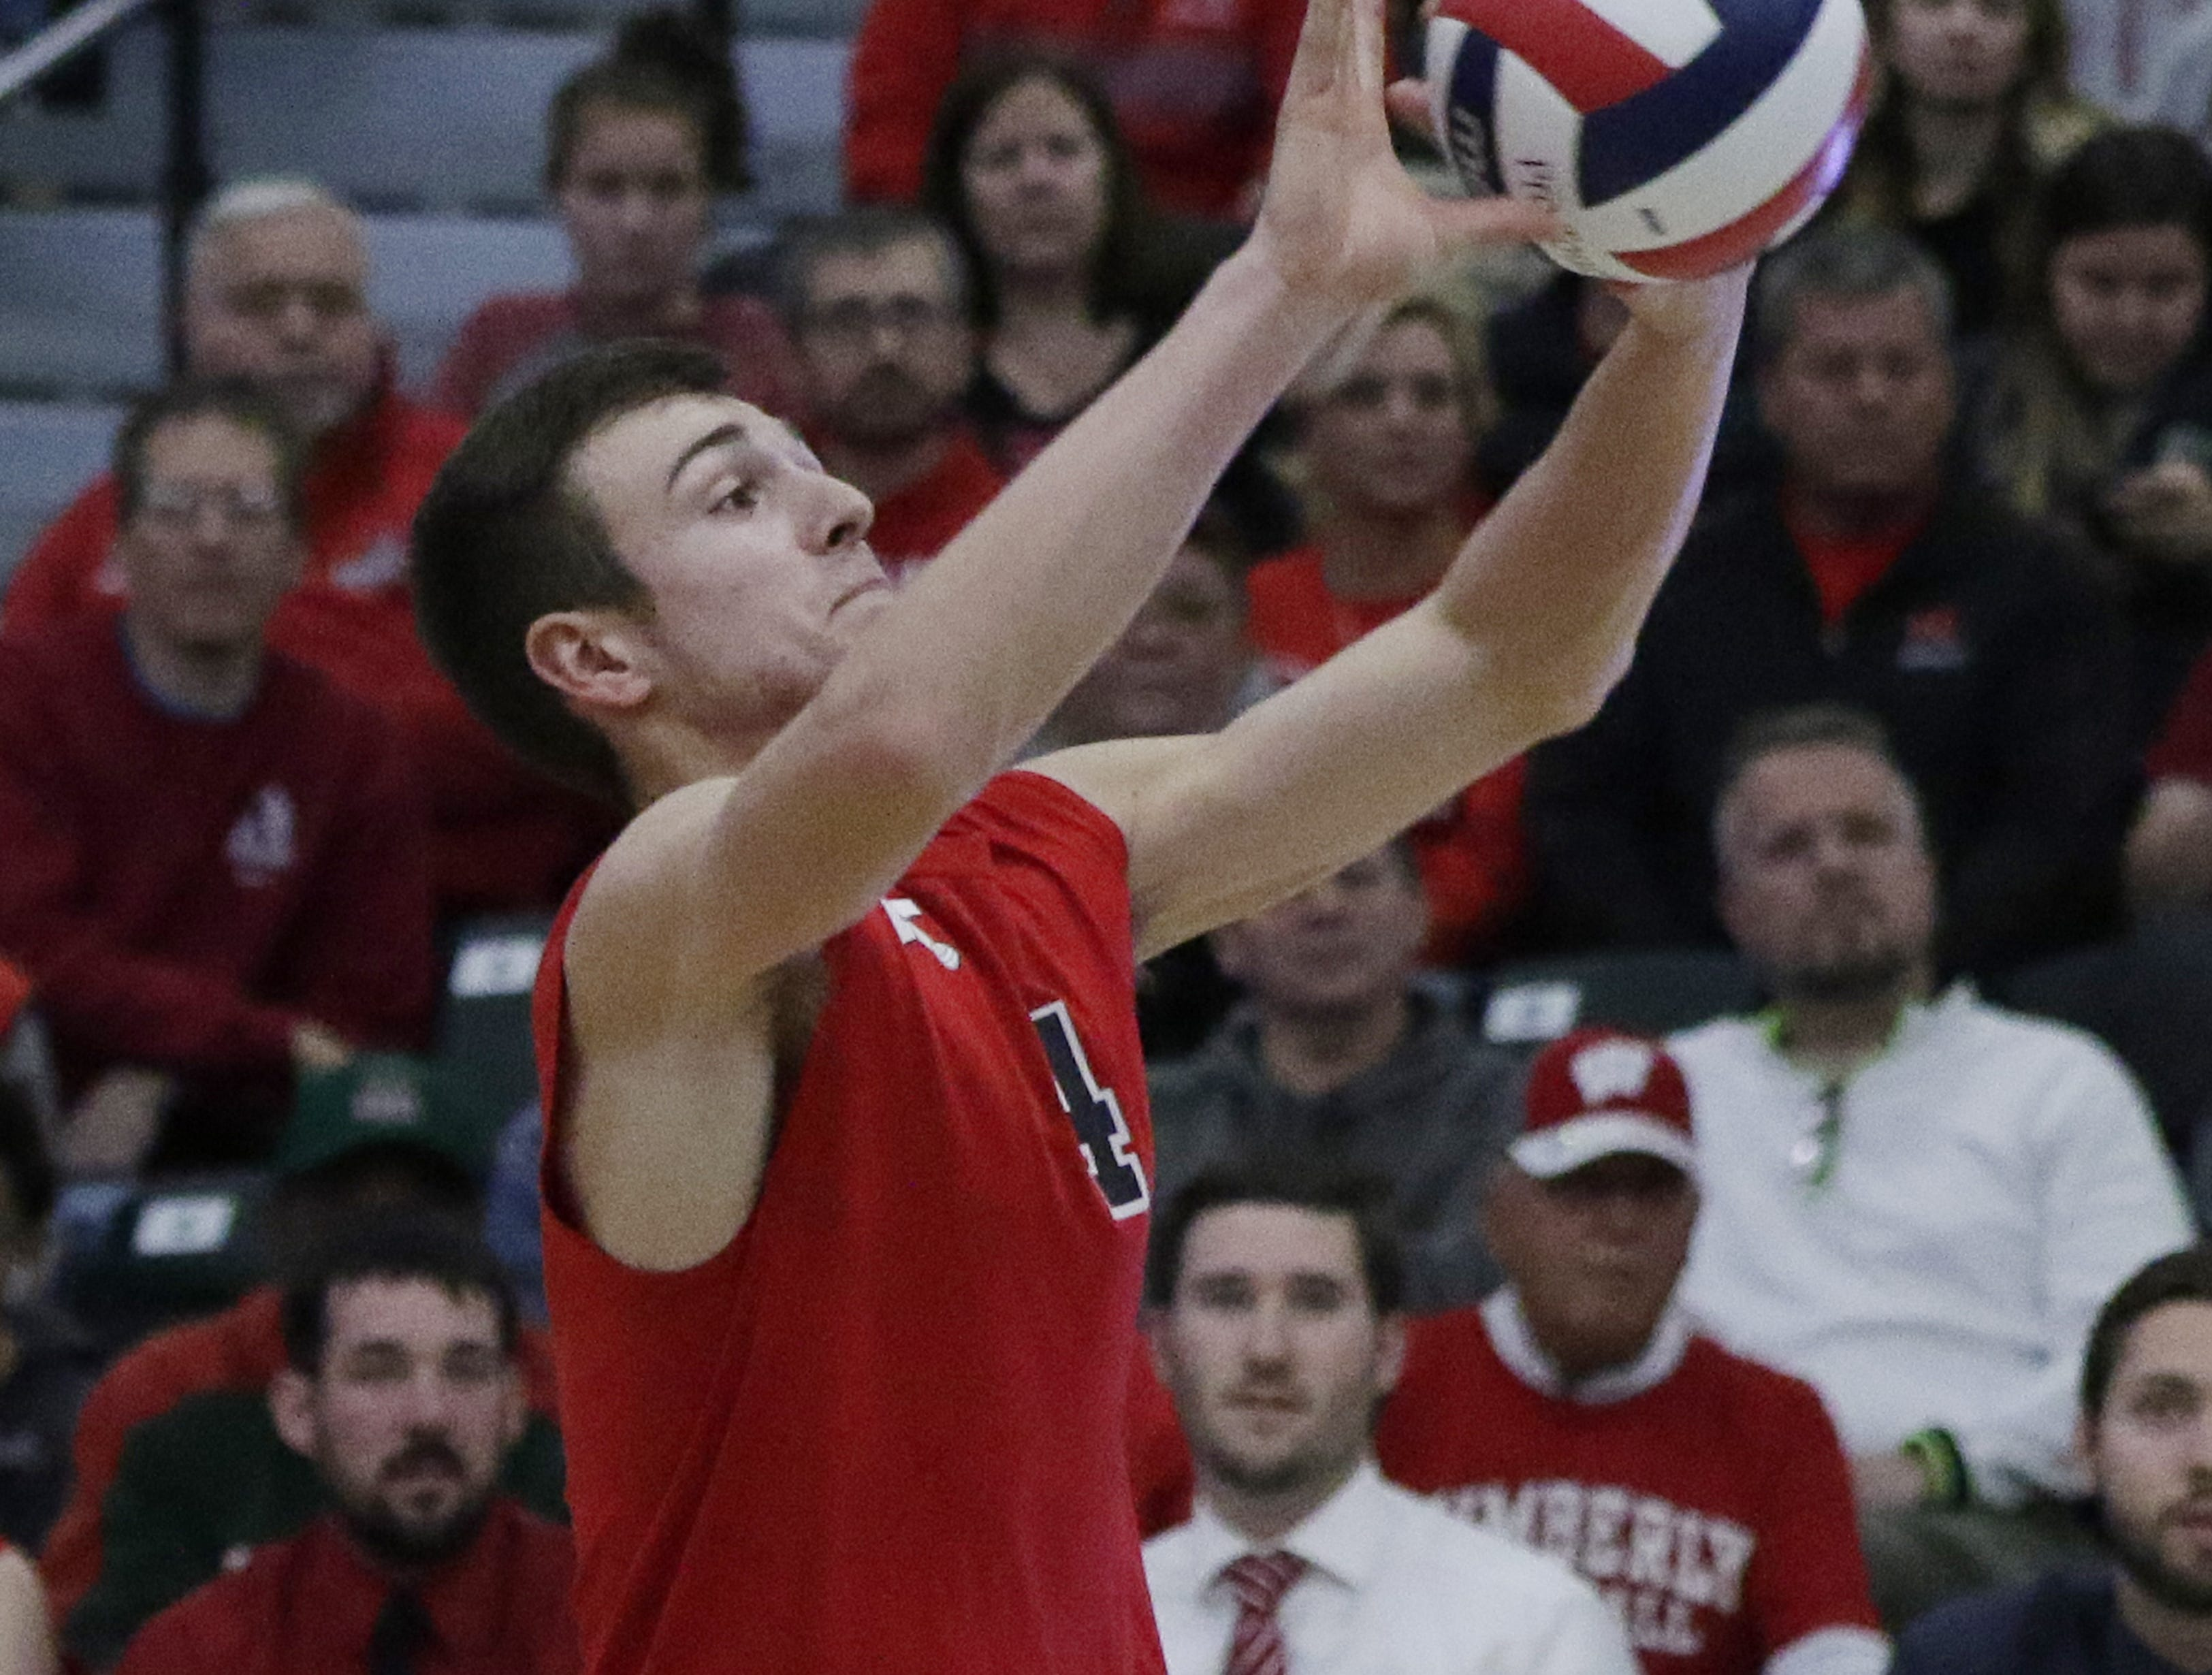 Kimberly's Trey Anderson sets the ball during their game.  Kimberly Papermakers played Germantown Warhawks in Division 1 WIAA State Boys Volleyball Championship, Saturday, November 10, 2018 at Wisconsin Lutheran College in Milwaukee, Wis. Joe Sienkiewicz/USA Today NETWORK-Wisconsin